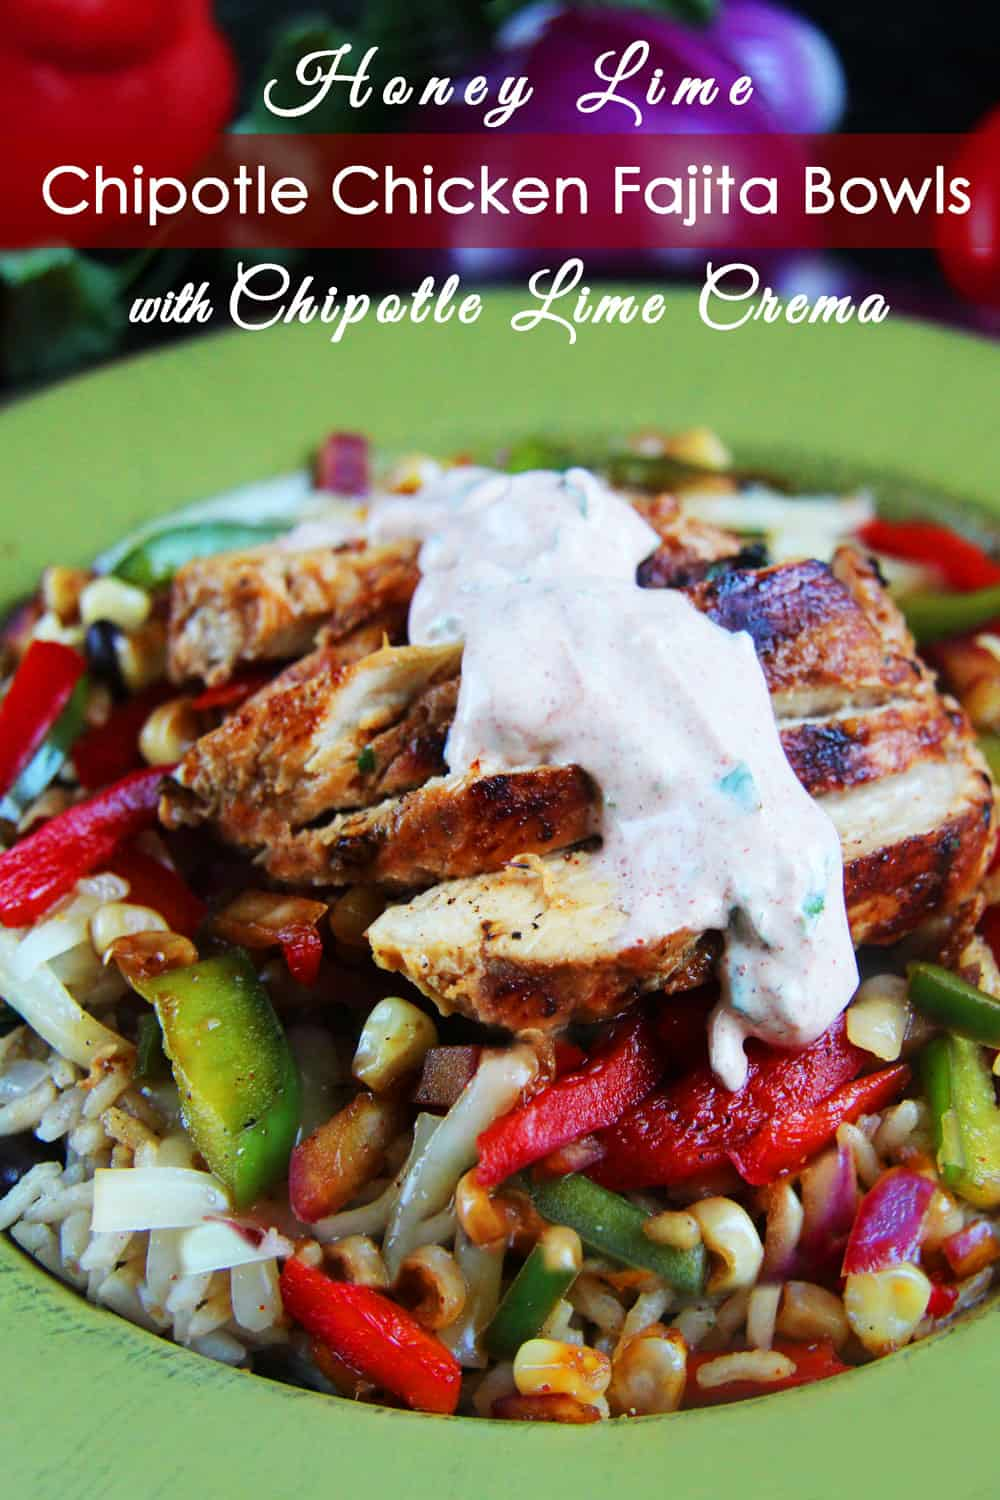 Honey-Lime-Chicken-Fajita-Bowls-with-Chipotle-Lime-Crema-1.jpg